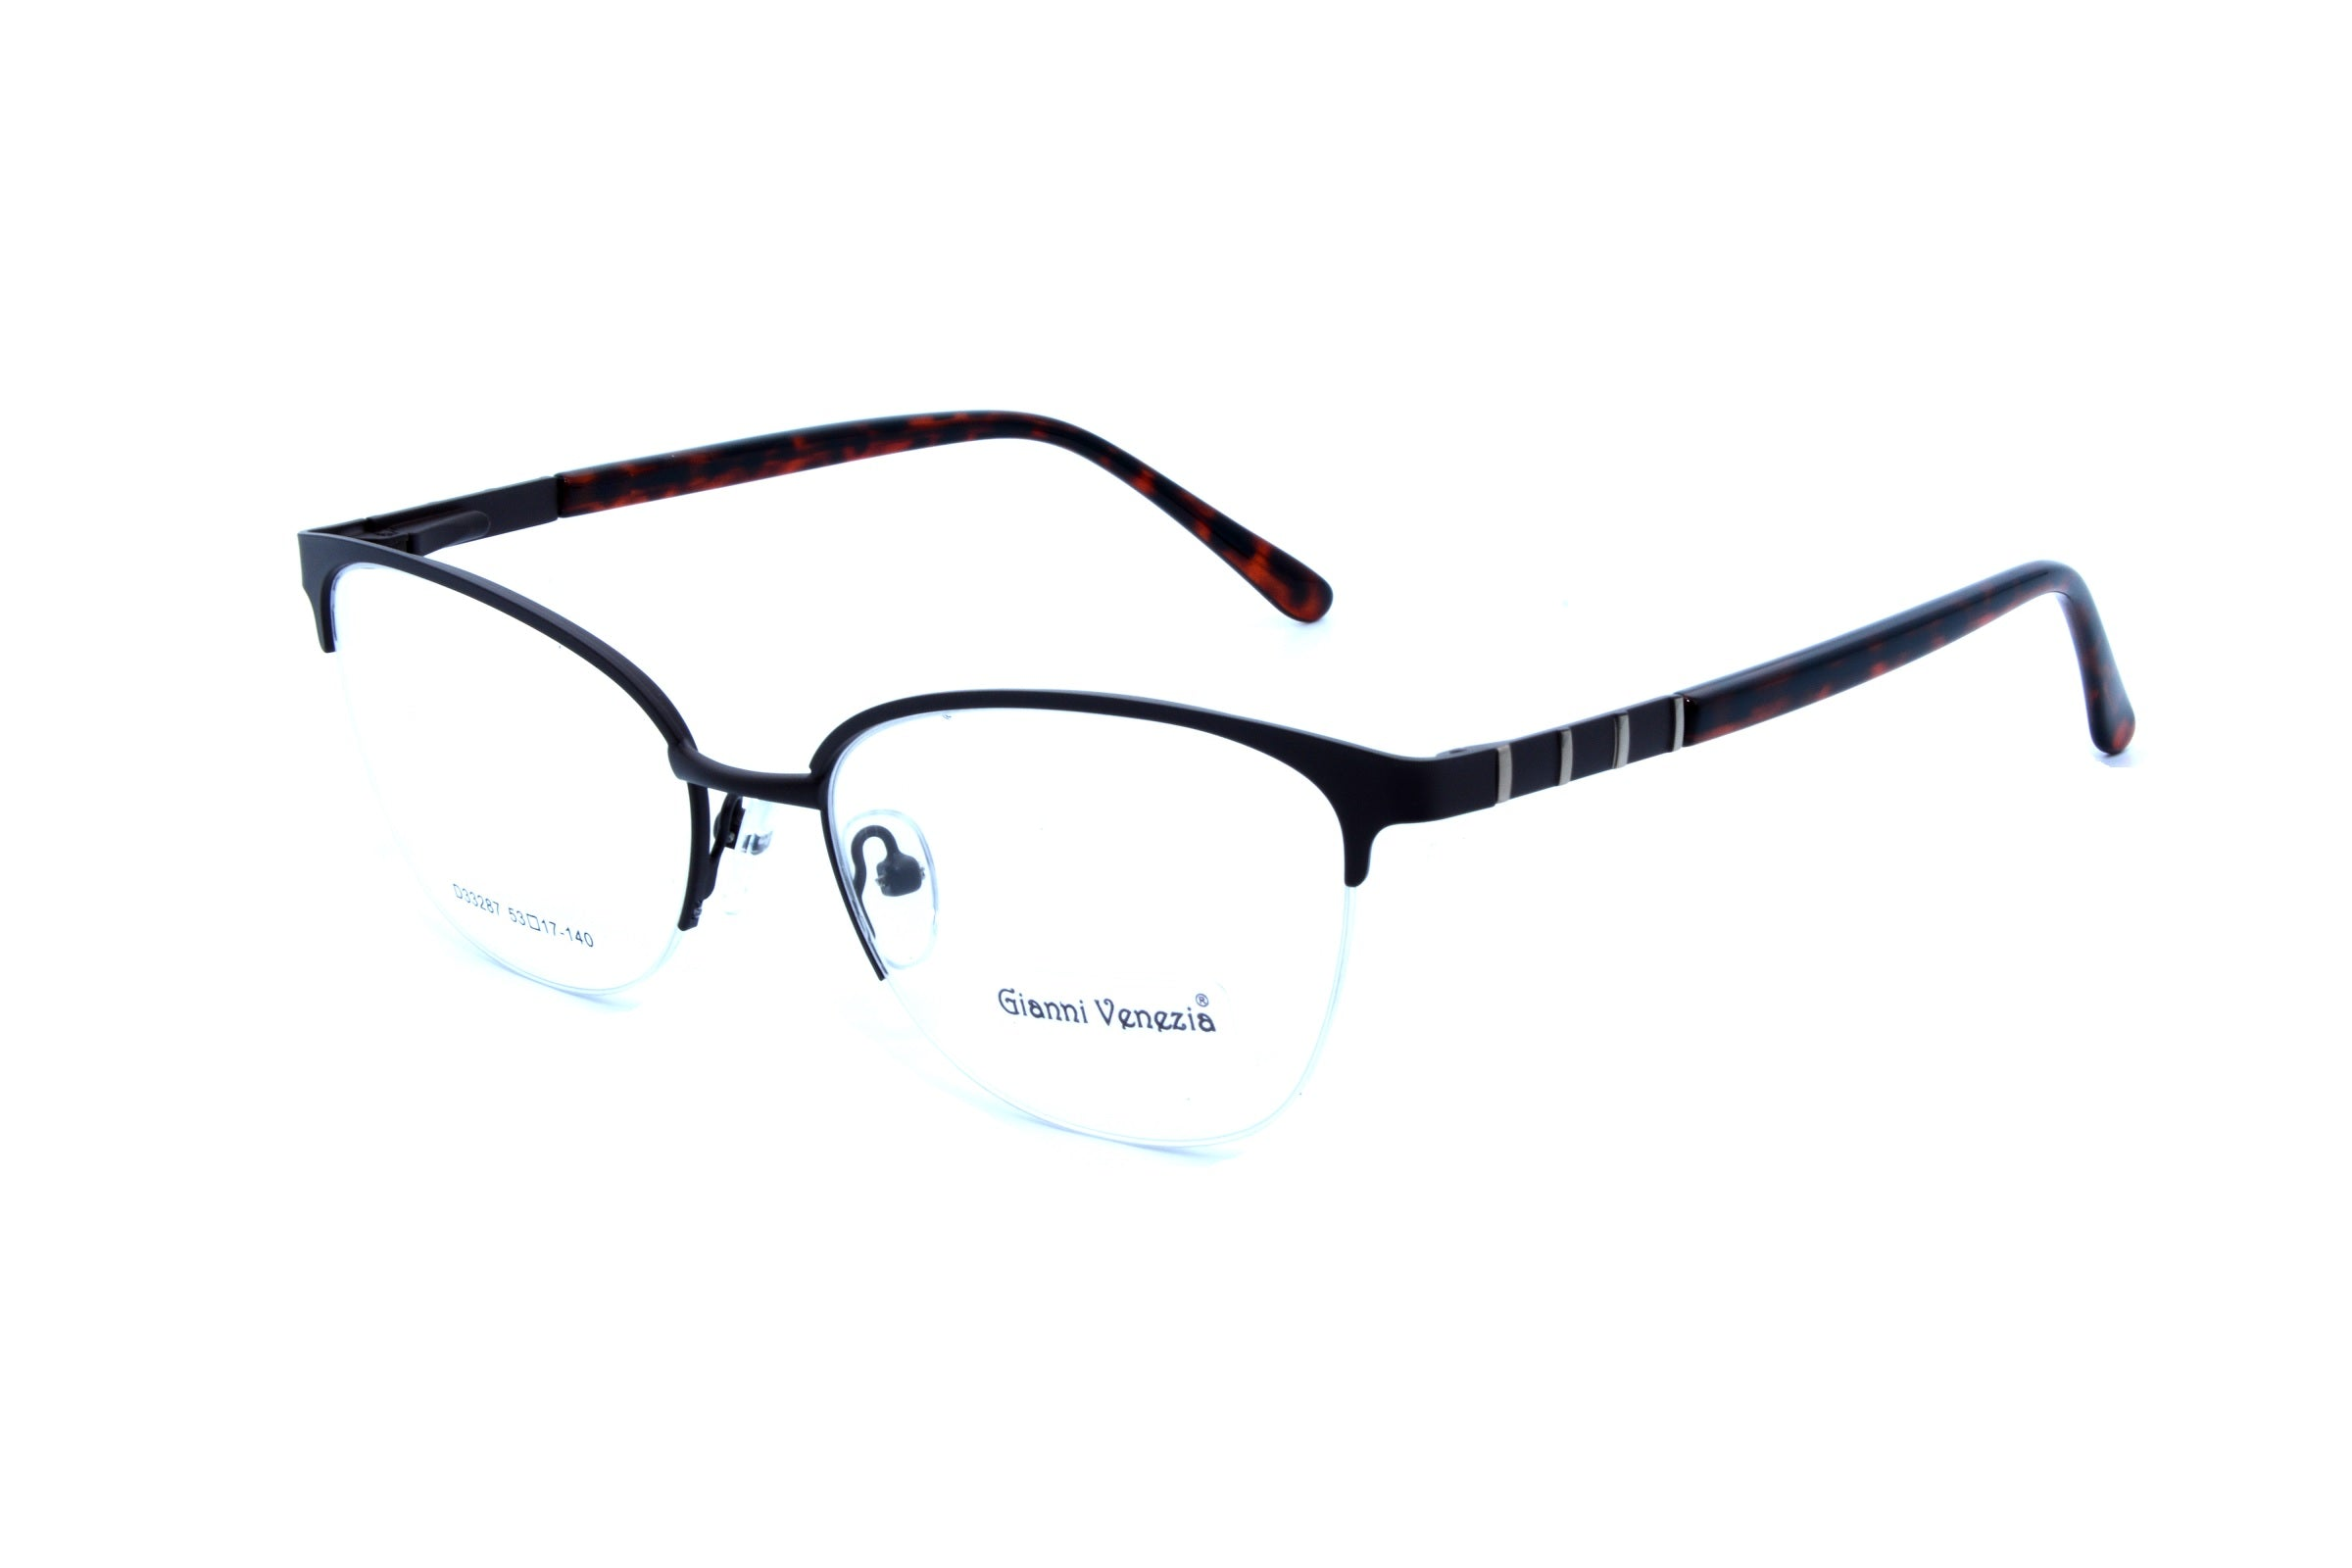 Gianni Venezia eyewear D33287, C4 - Optics Trading